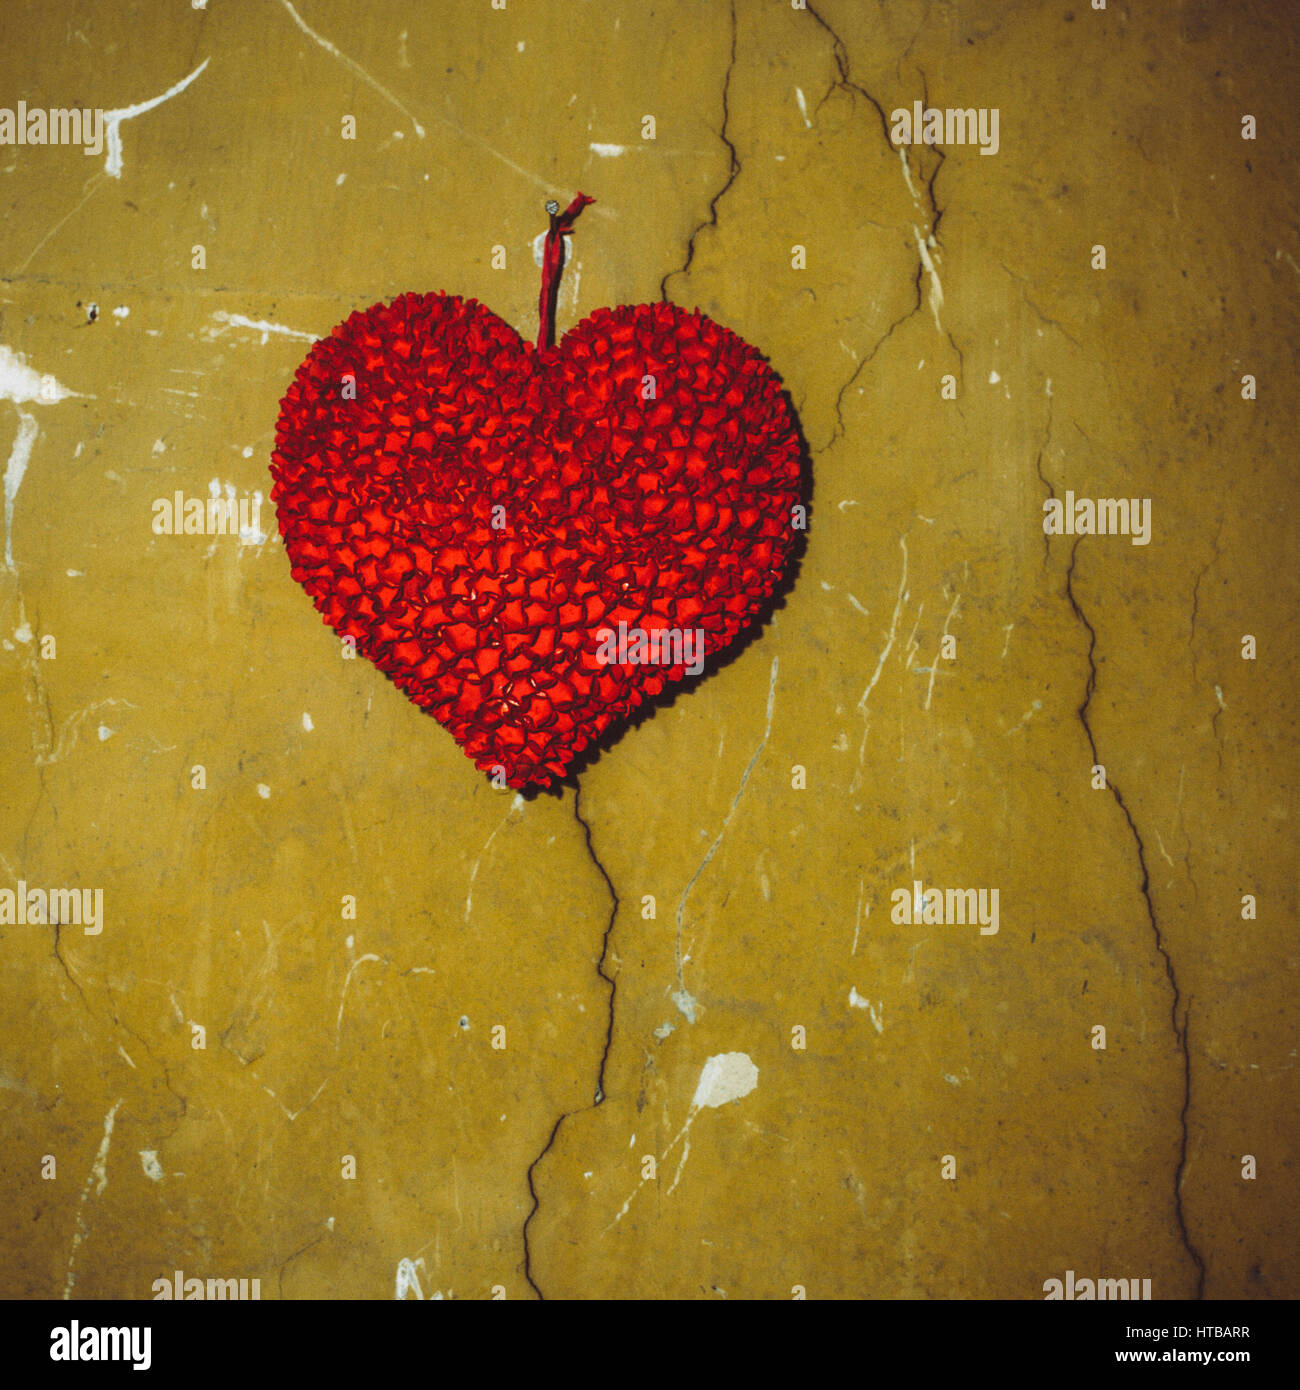 Cracked Heart Stock Photos & Cracked Heart Stock Images - Alamy